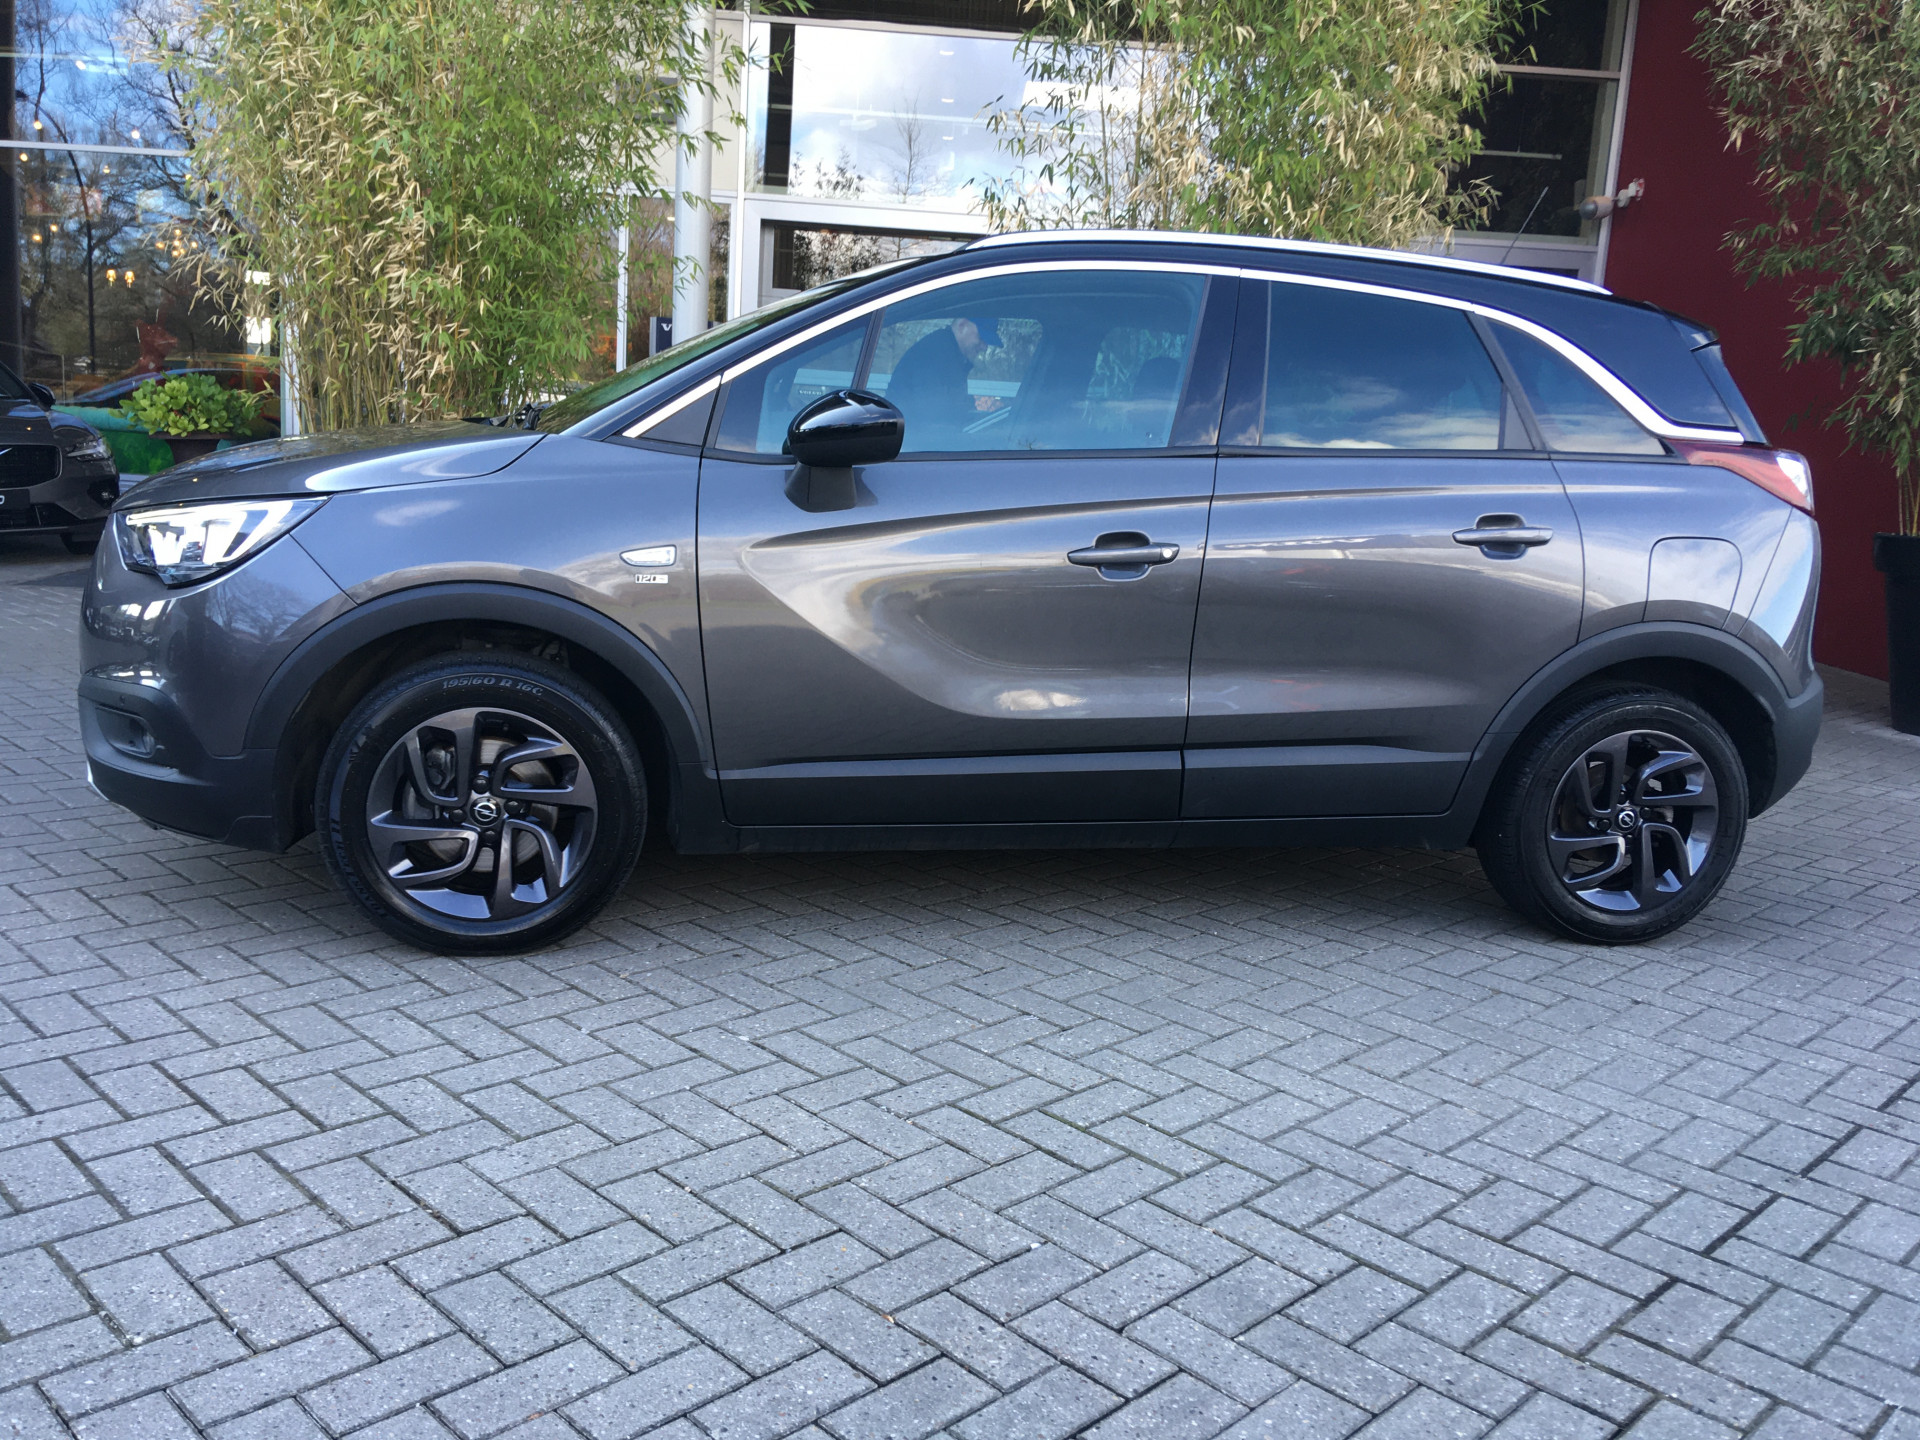 Opel Crossland X 1.2 Turbo 120 Jaar Edition Aut.